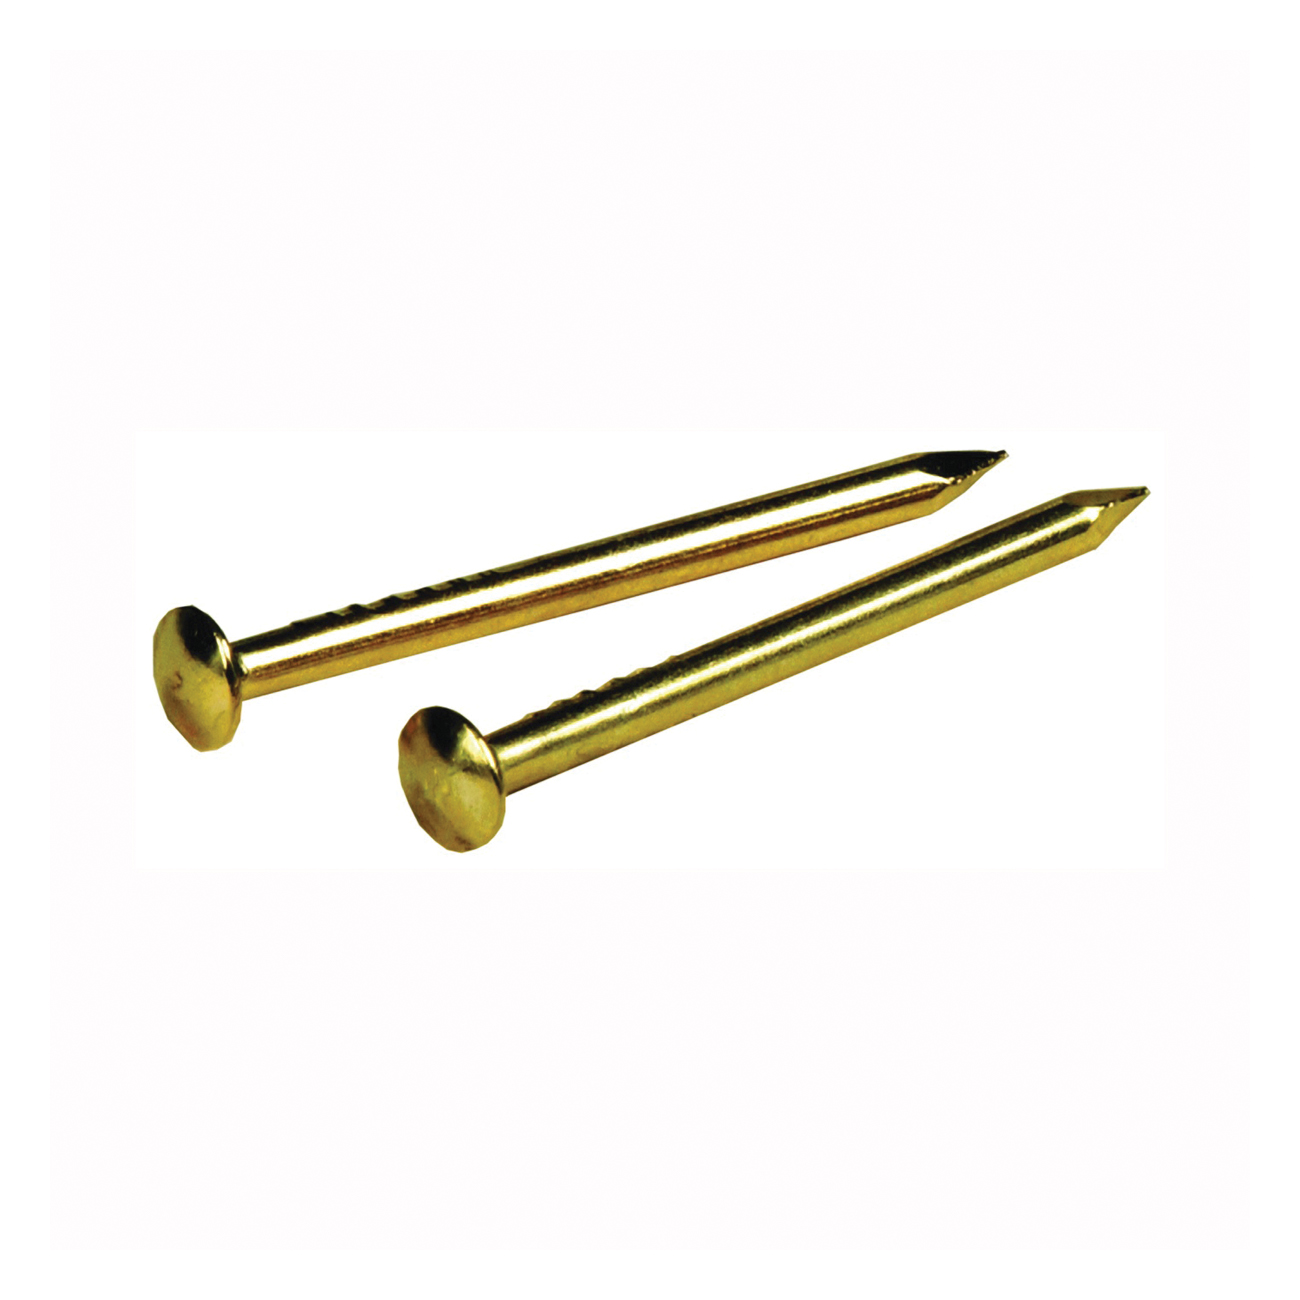 Picture of HILLMAN 122623 Escutcheon Pin, 1 in L, Steel, Brass